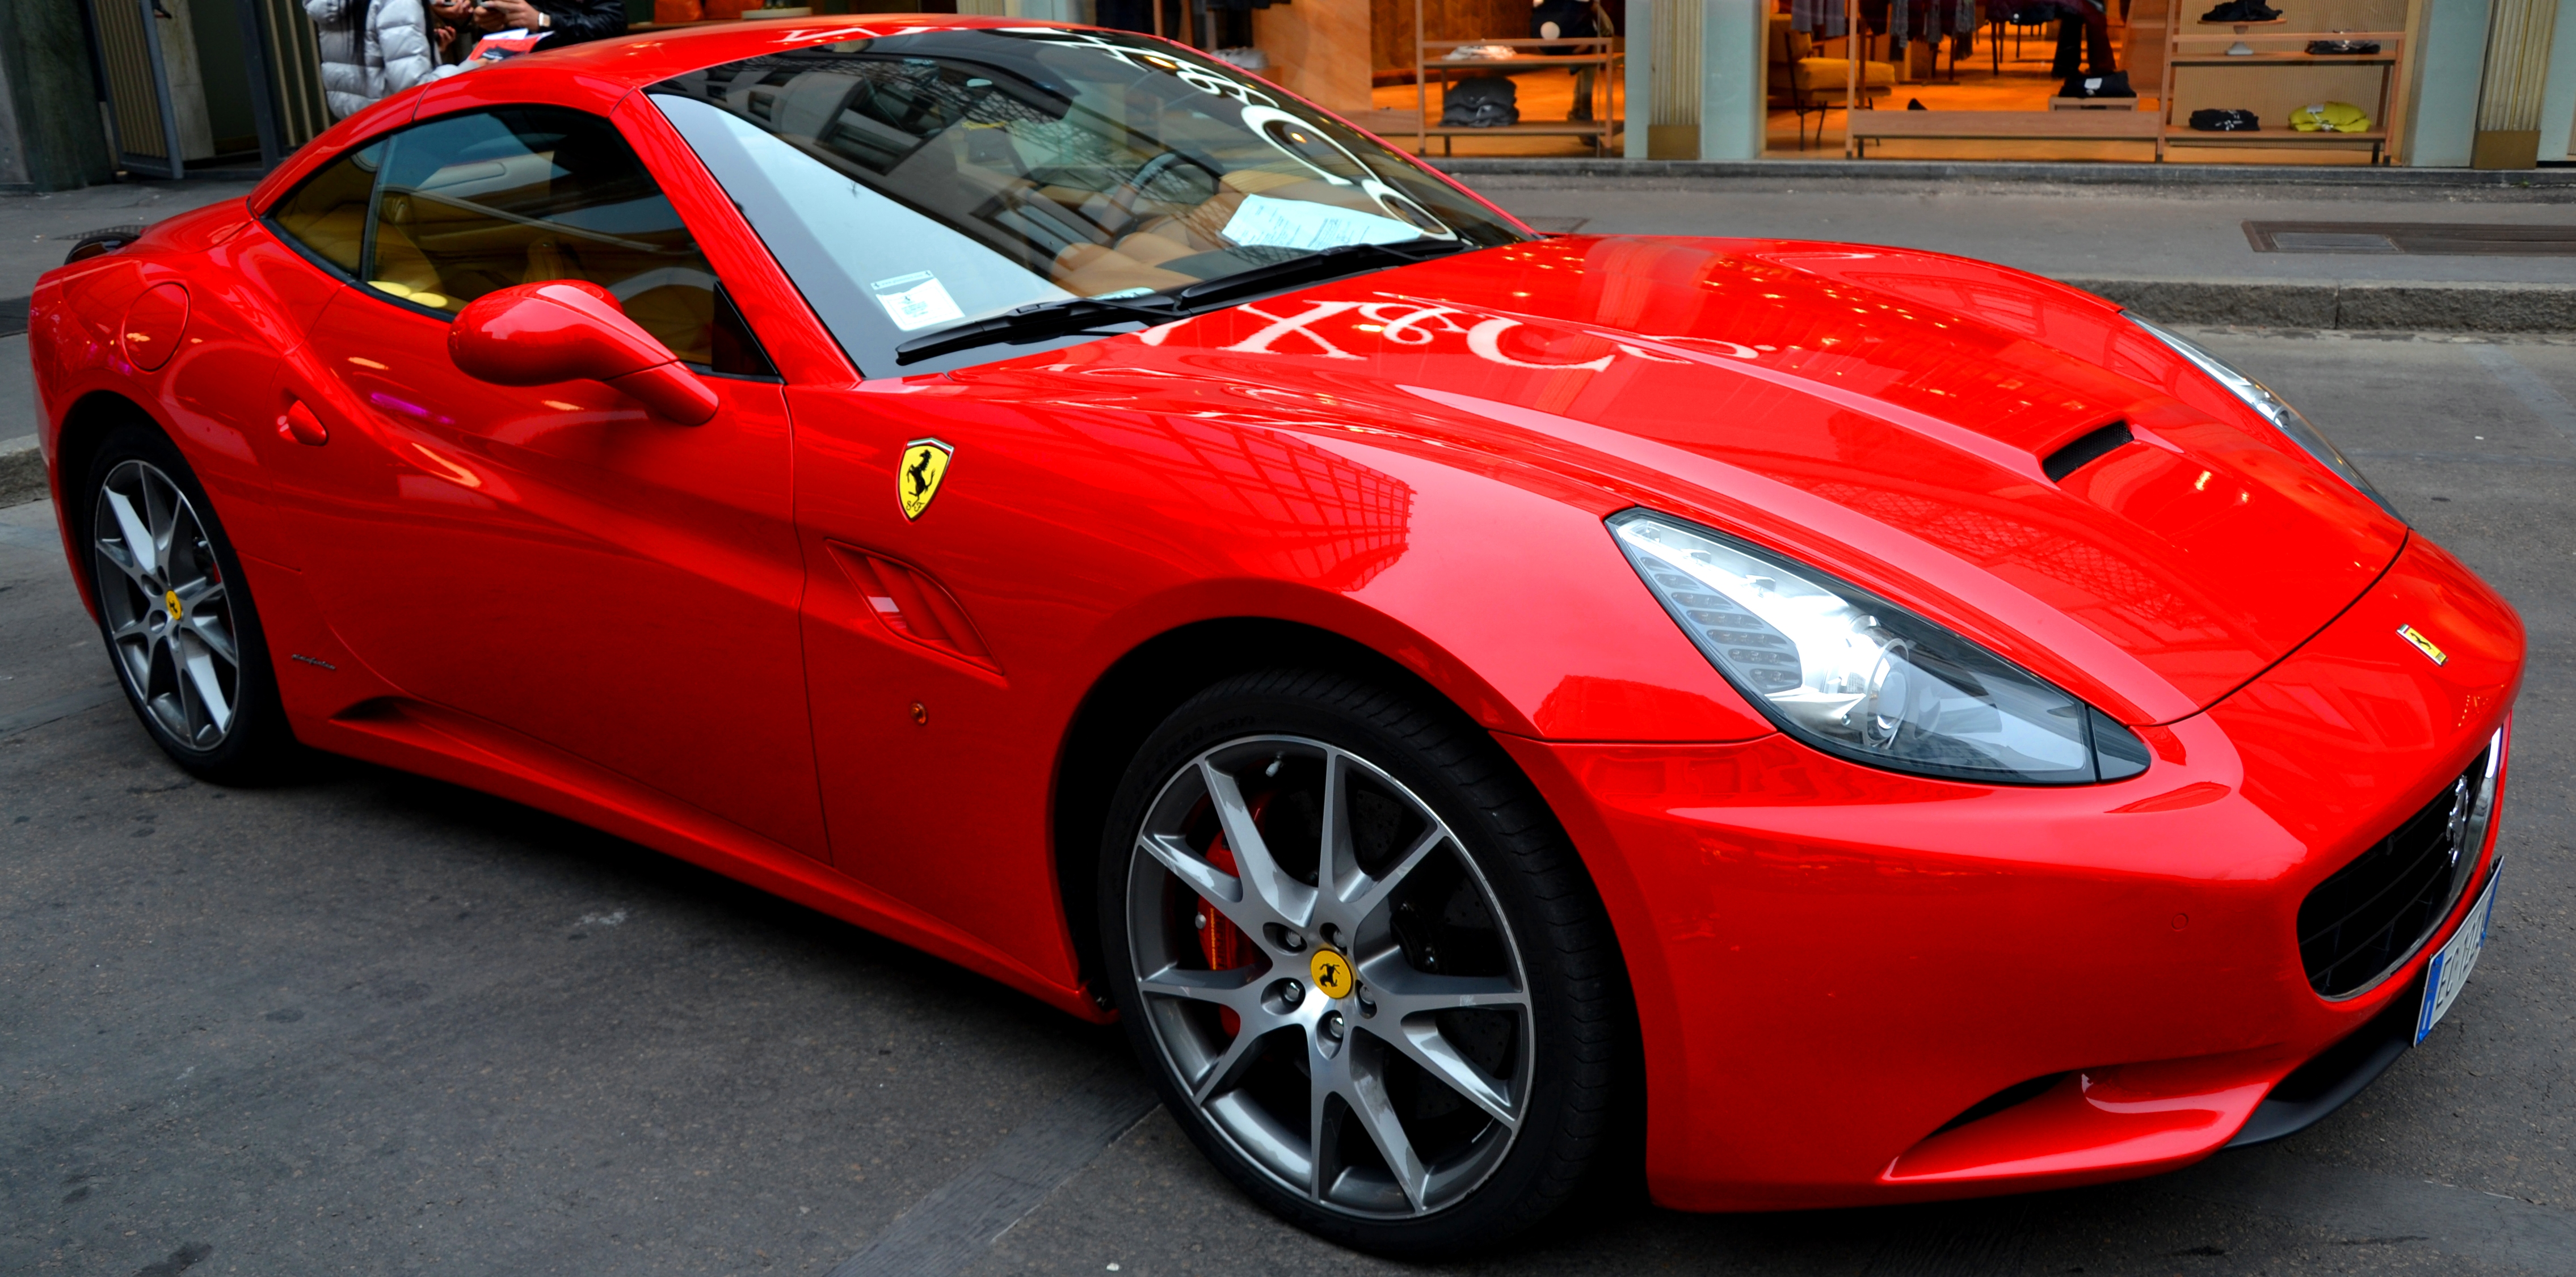 Ferrari Cabriolet California by Gaia96Bennoda on DeviantArt